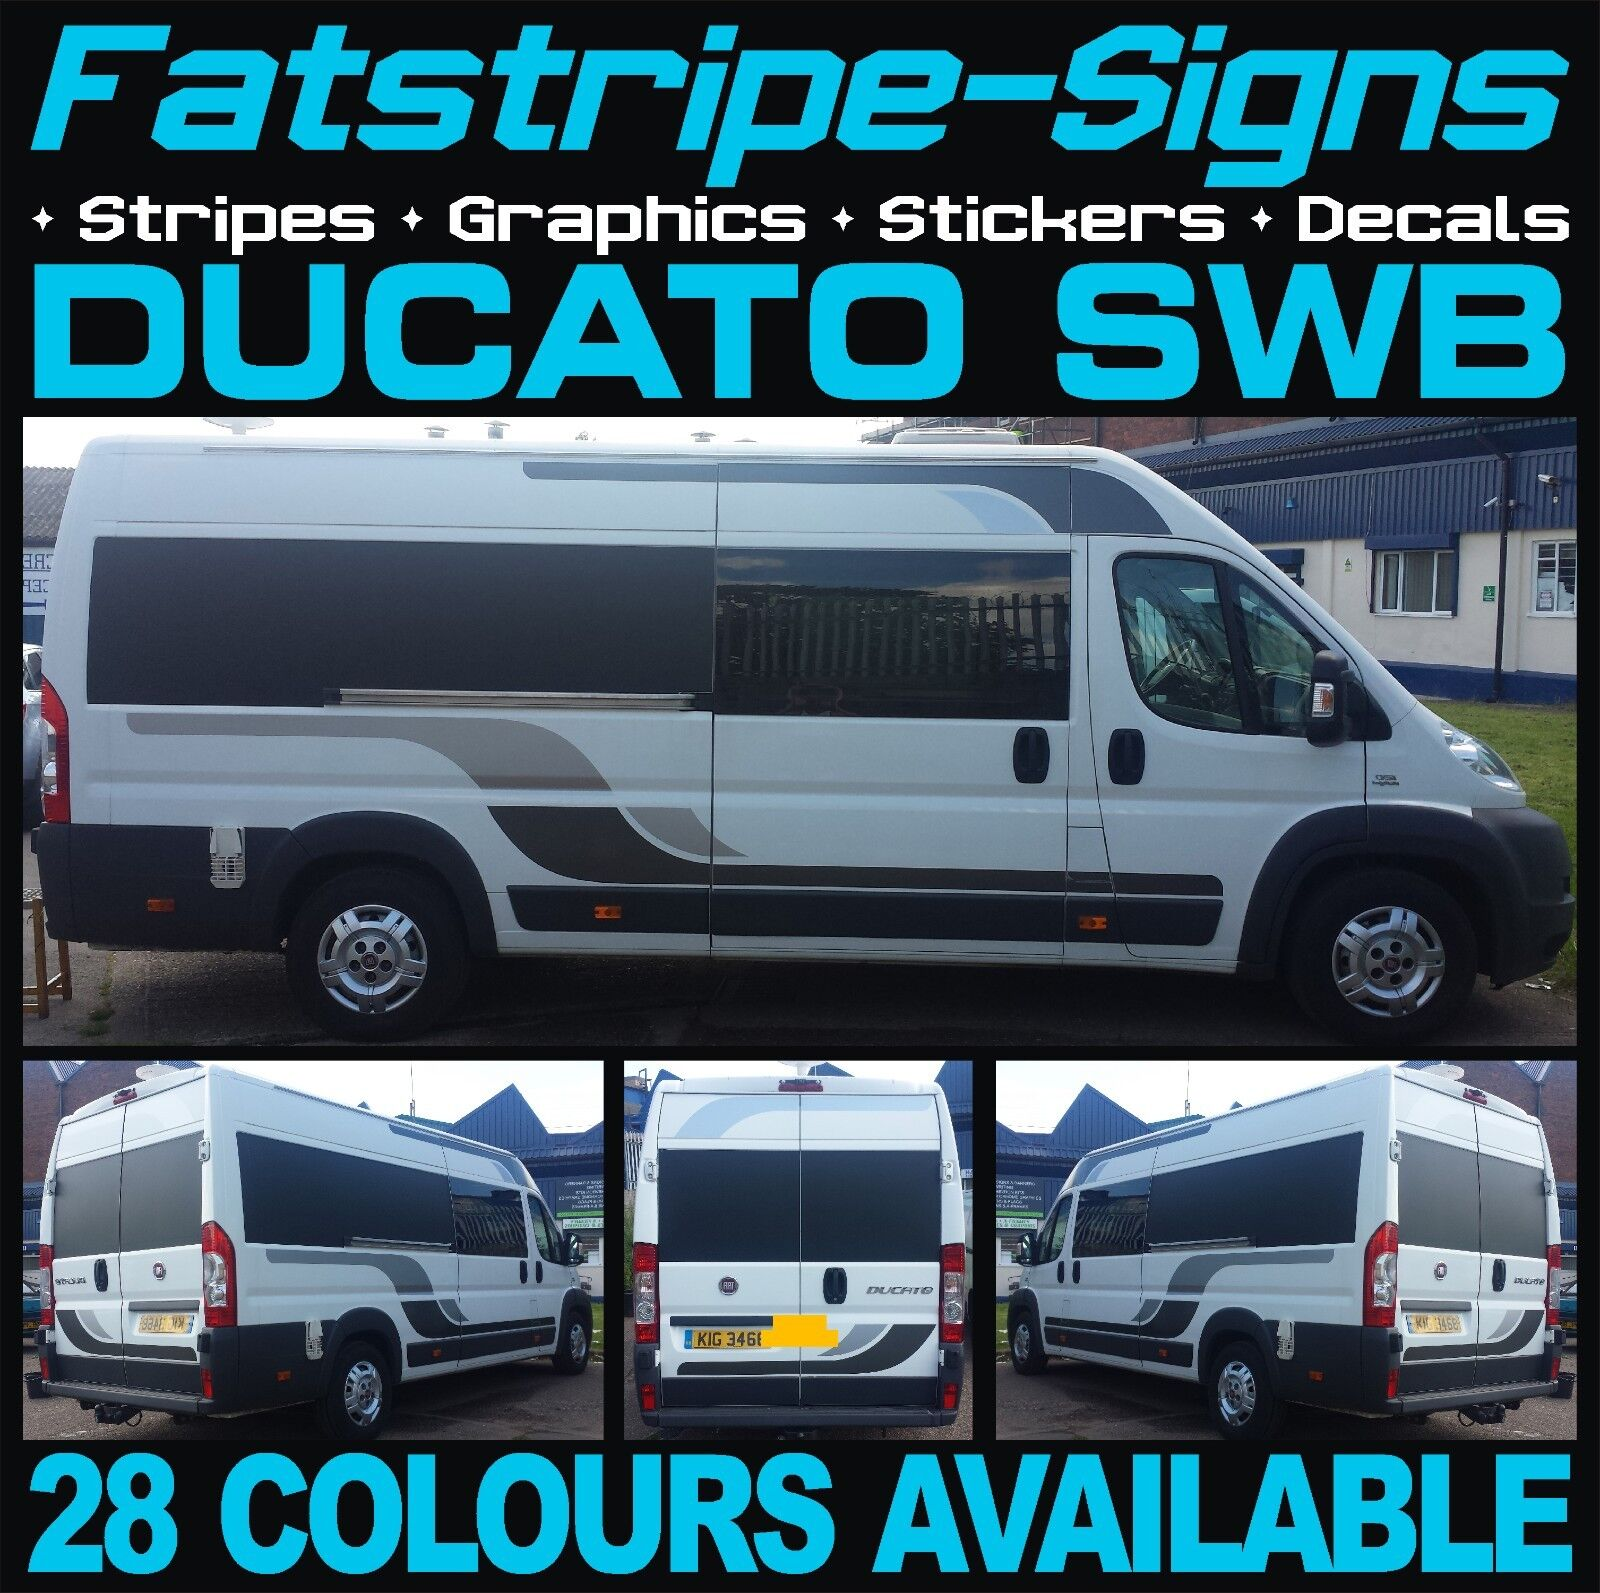 Fiat ducato swb l1 motorhome vinyl graphics stickers decals stripes camper van for sale online ebay